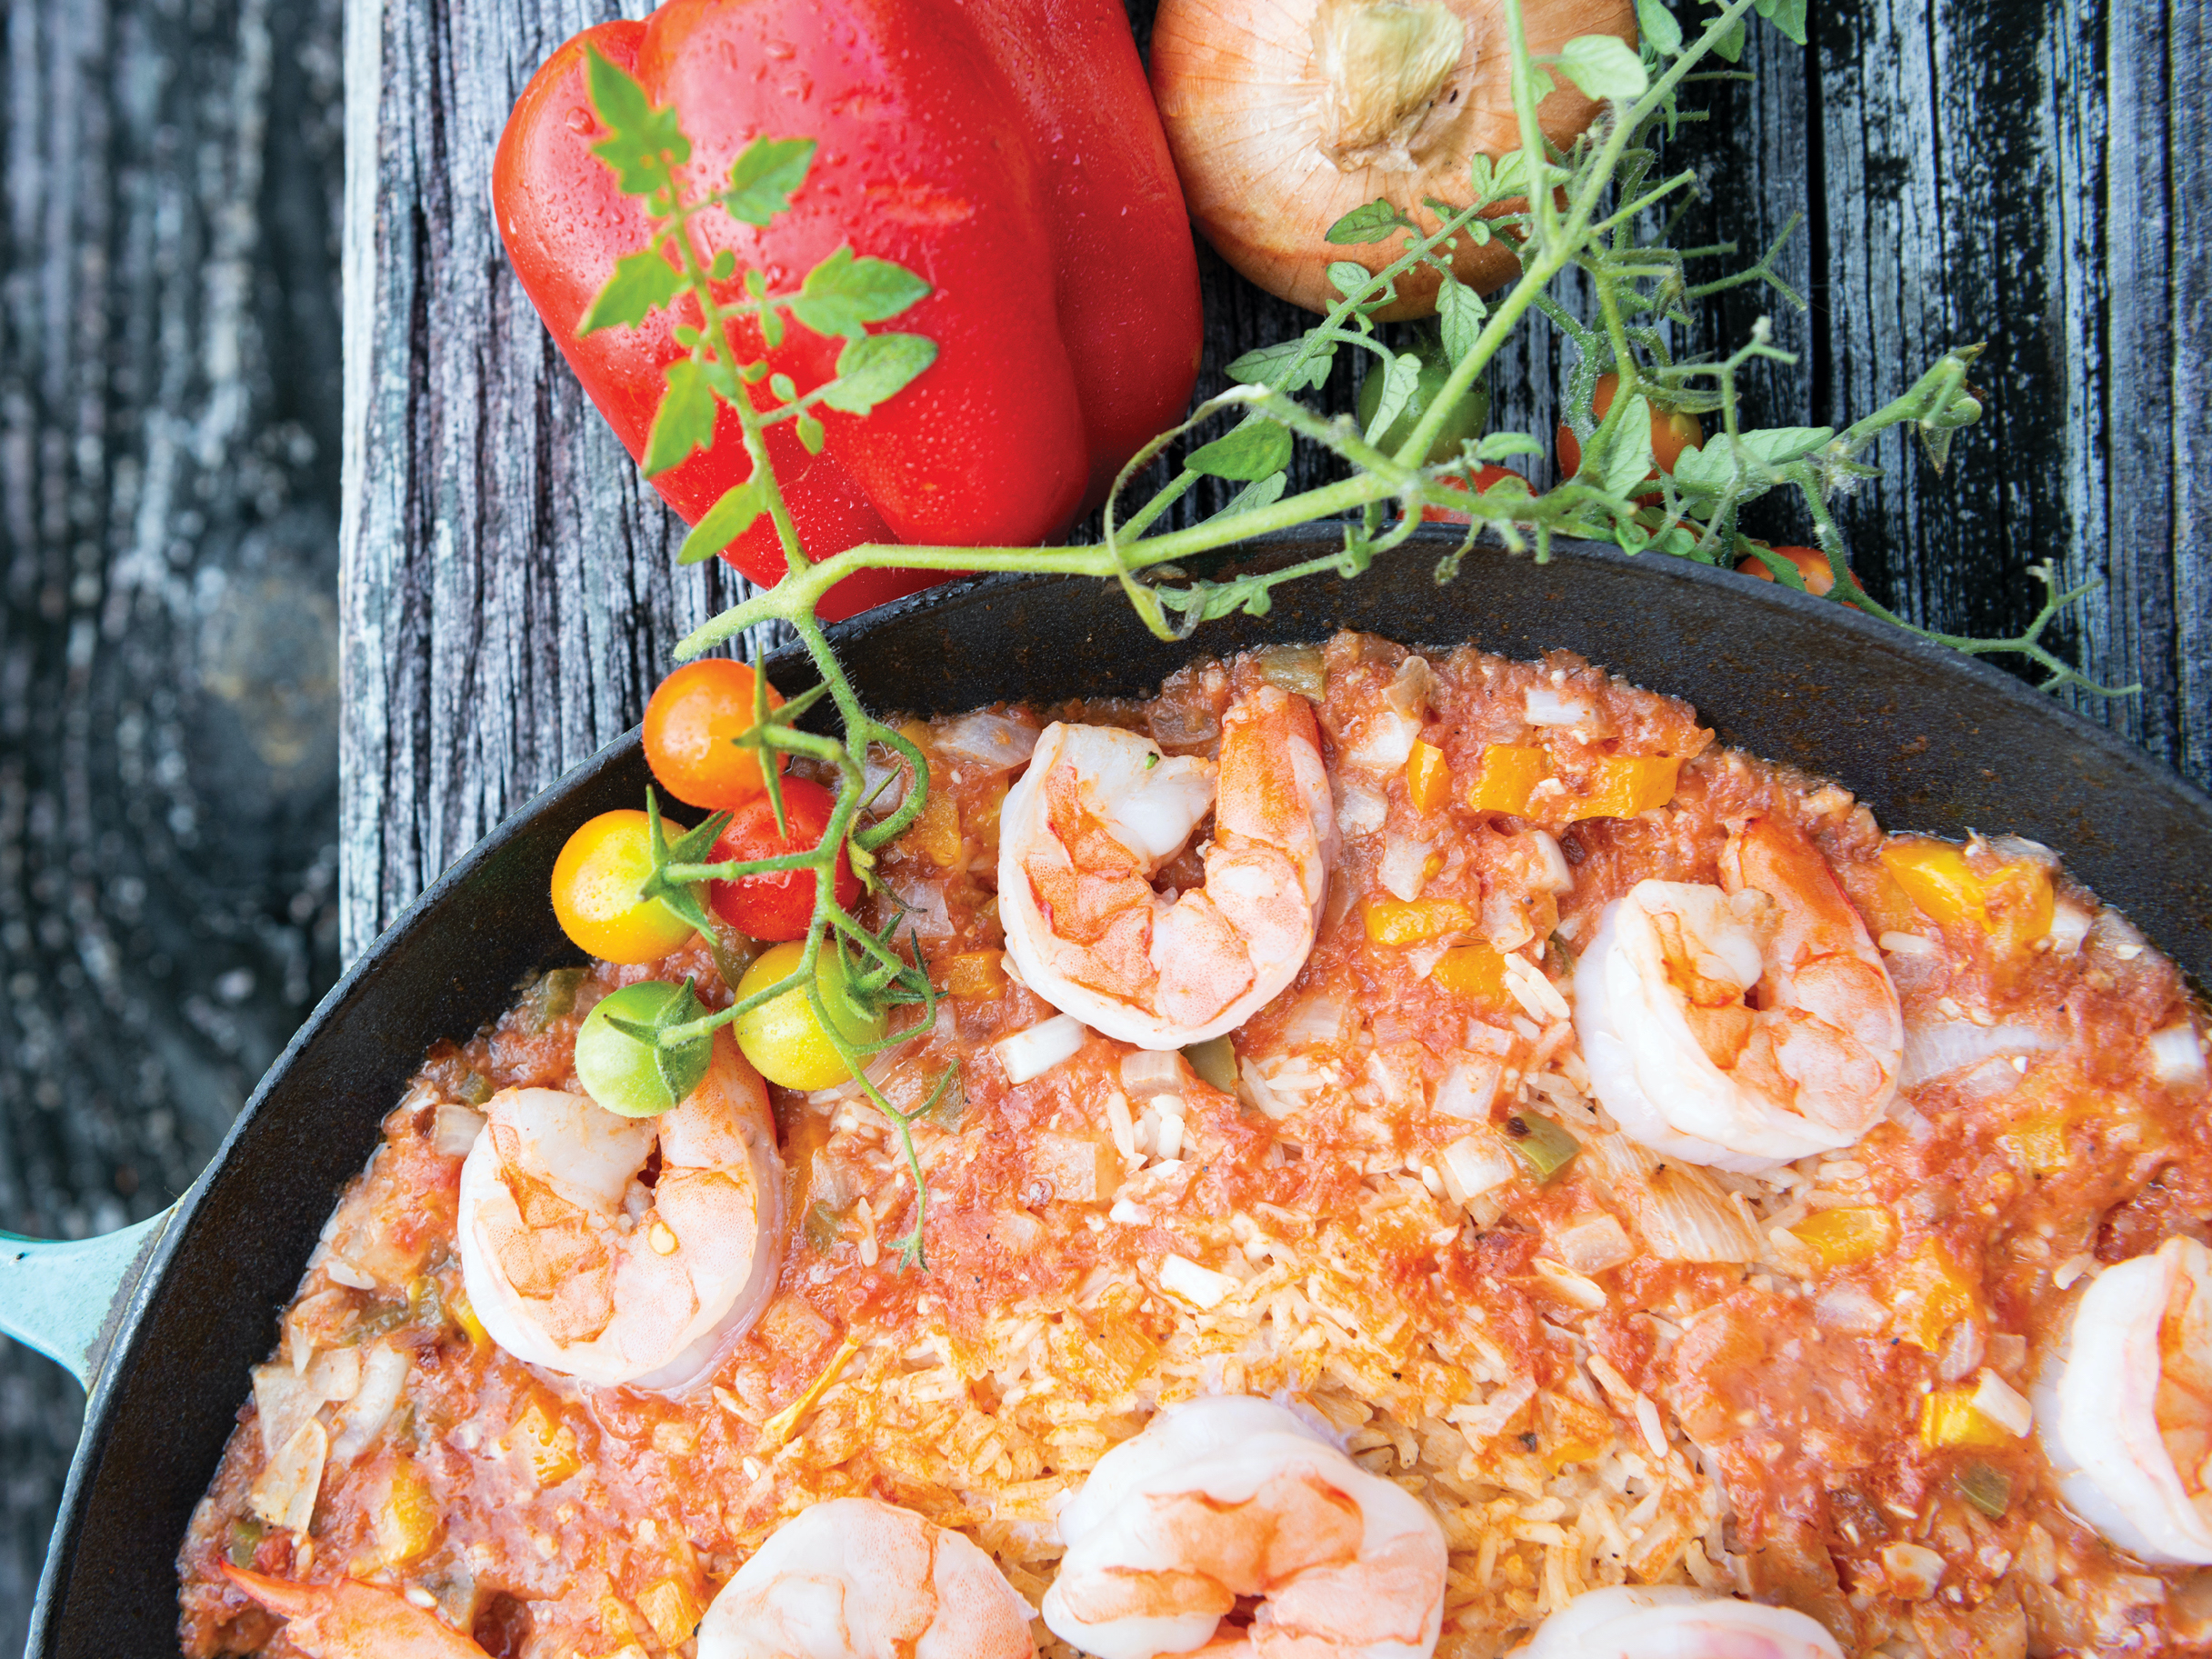 A shrimp and rice dish in a pan